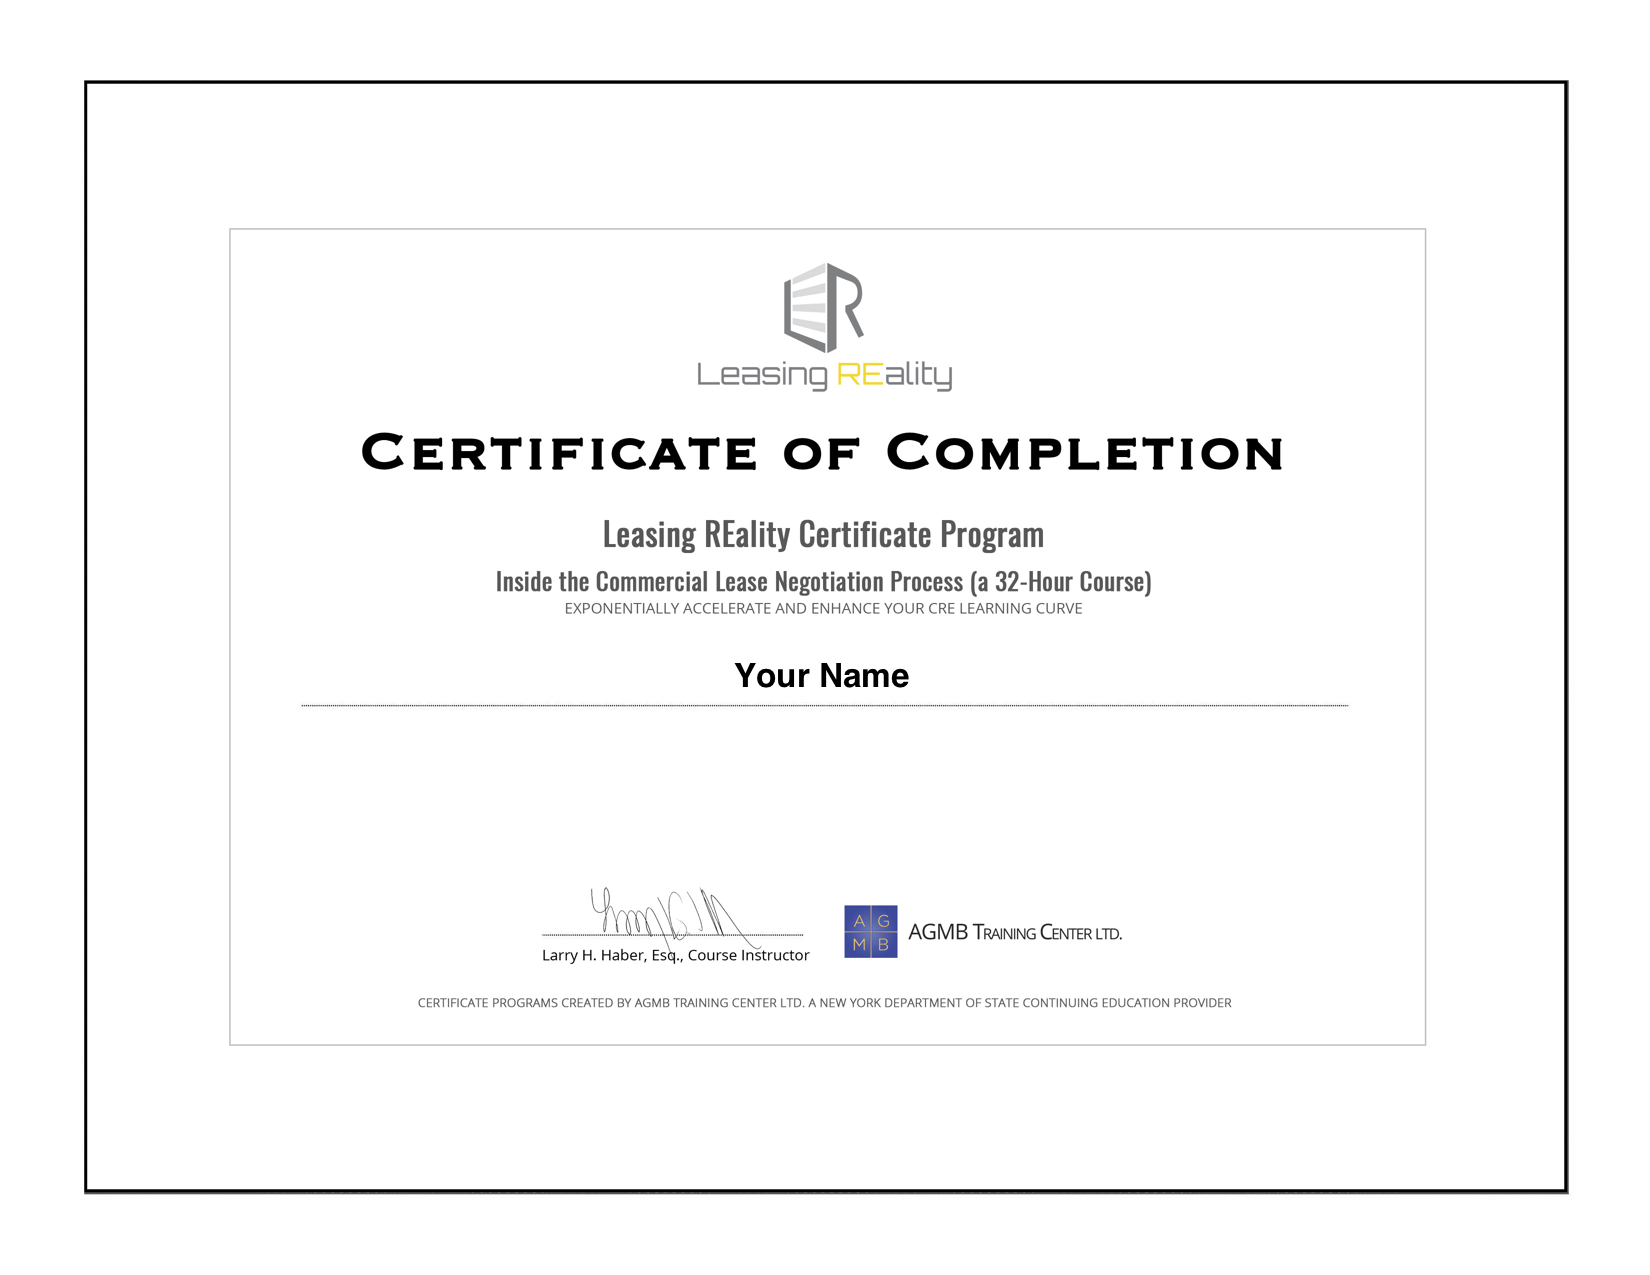 Leasing_REality_Certificate